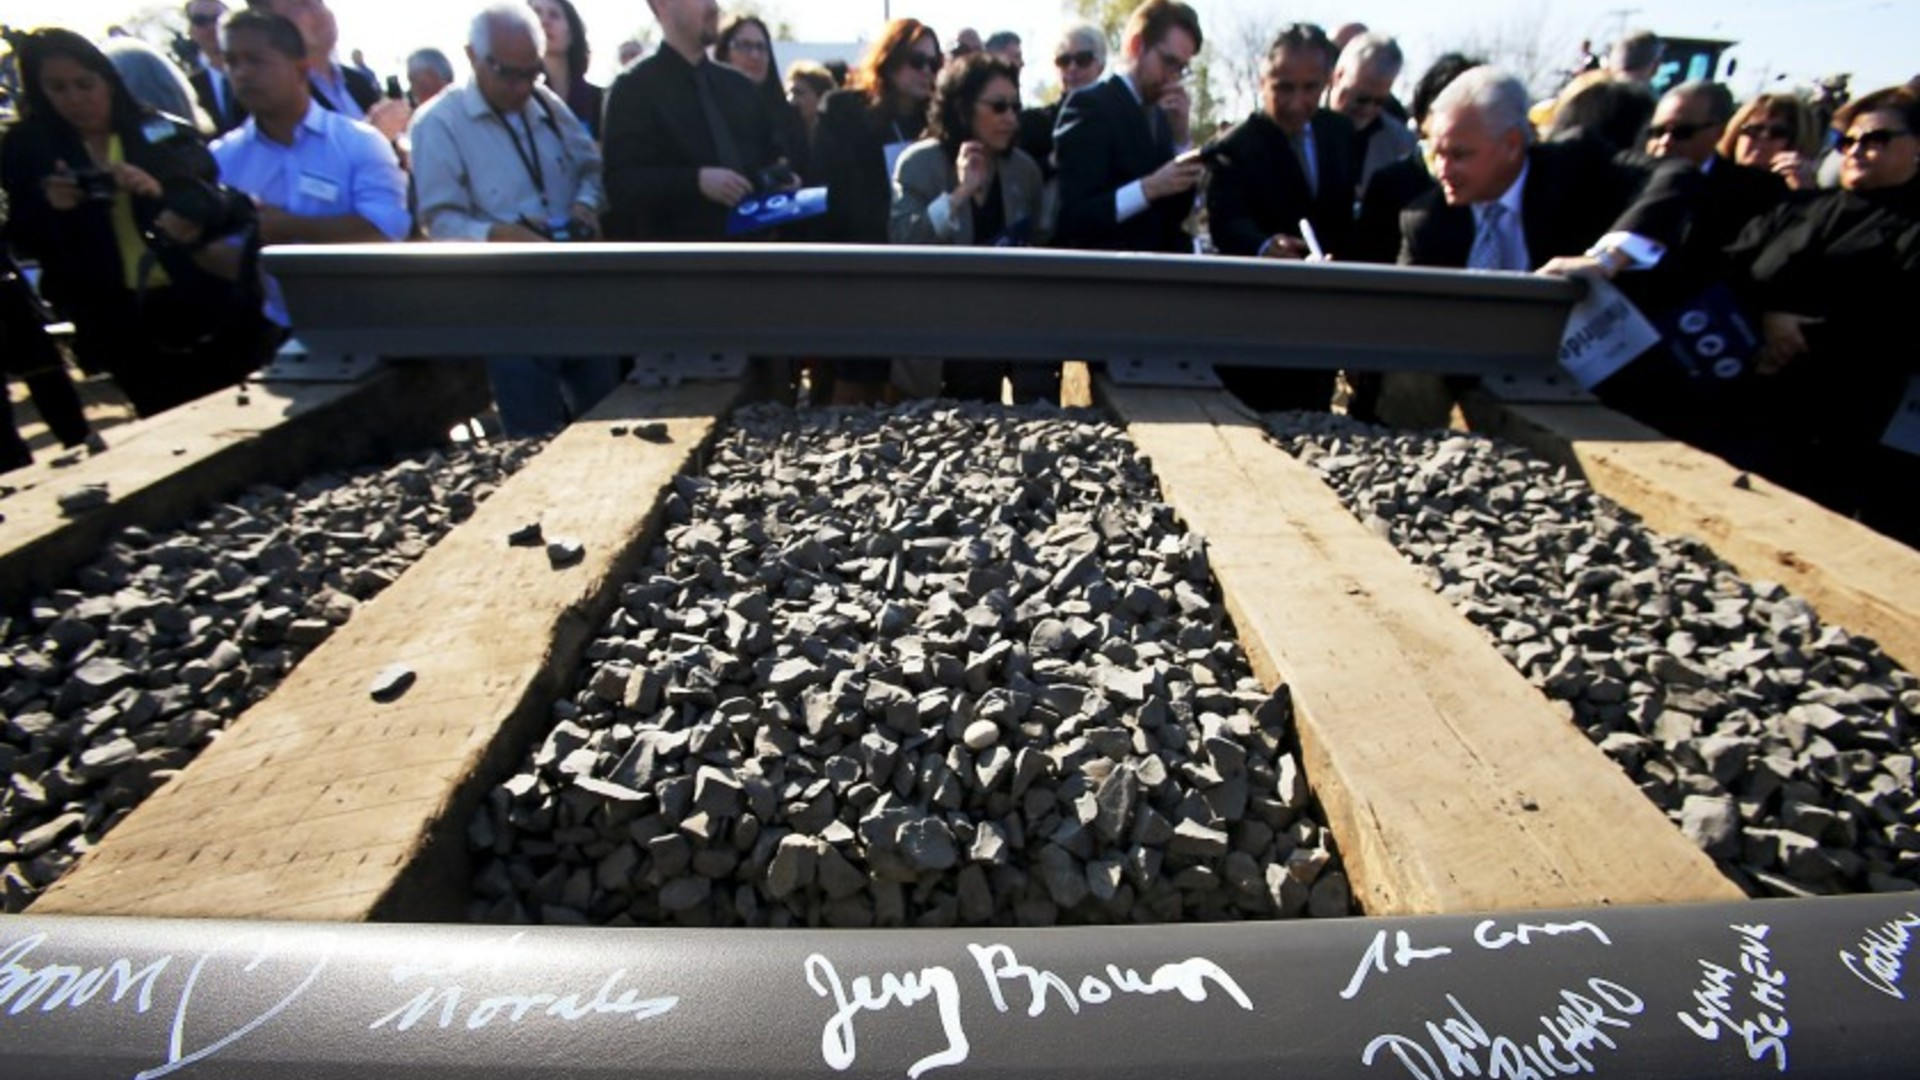 Guests, including then Gov. Jerry Brown, sign a rail segment during a groundbreaking ceremony for a California bullet train station in Fresno on Jan. 6, 2015.(Los Angeles Times)